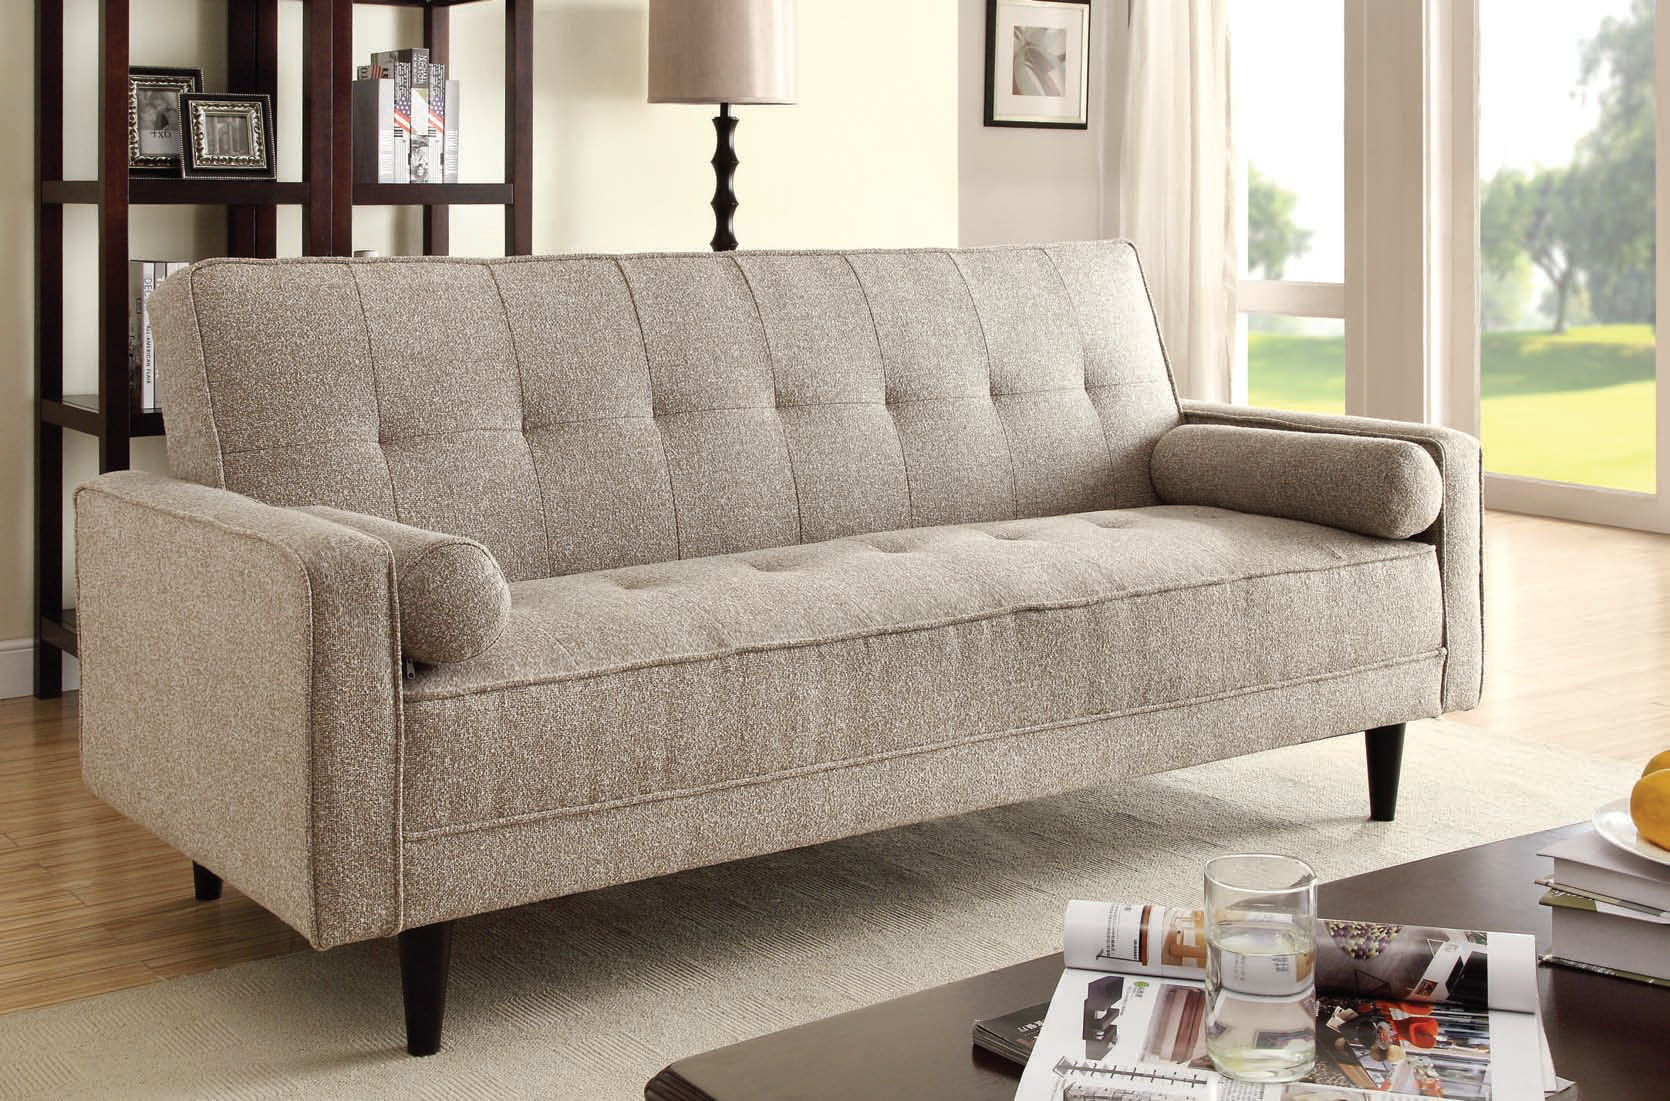 acme     acme furniture edana sand adjustable sofa with two pillows   the      rh   theclassyhome